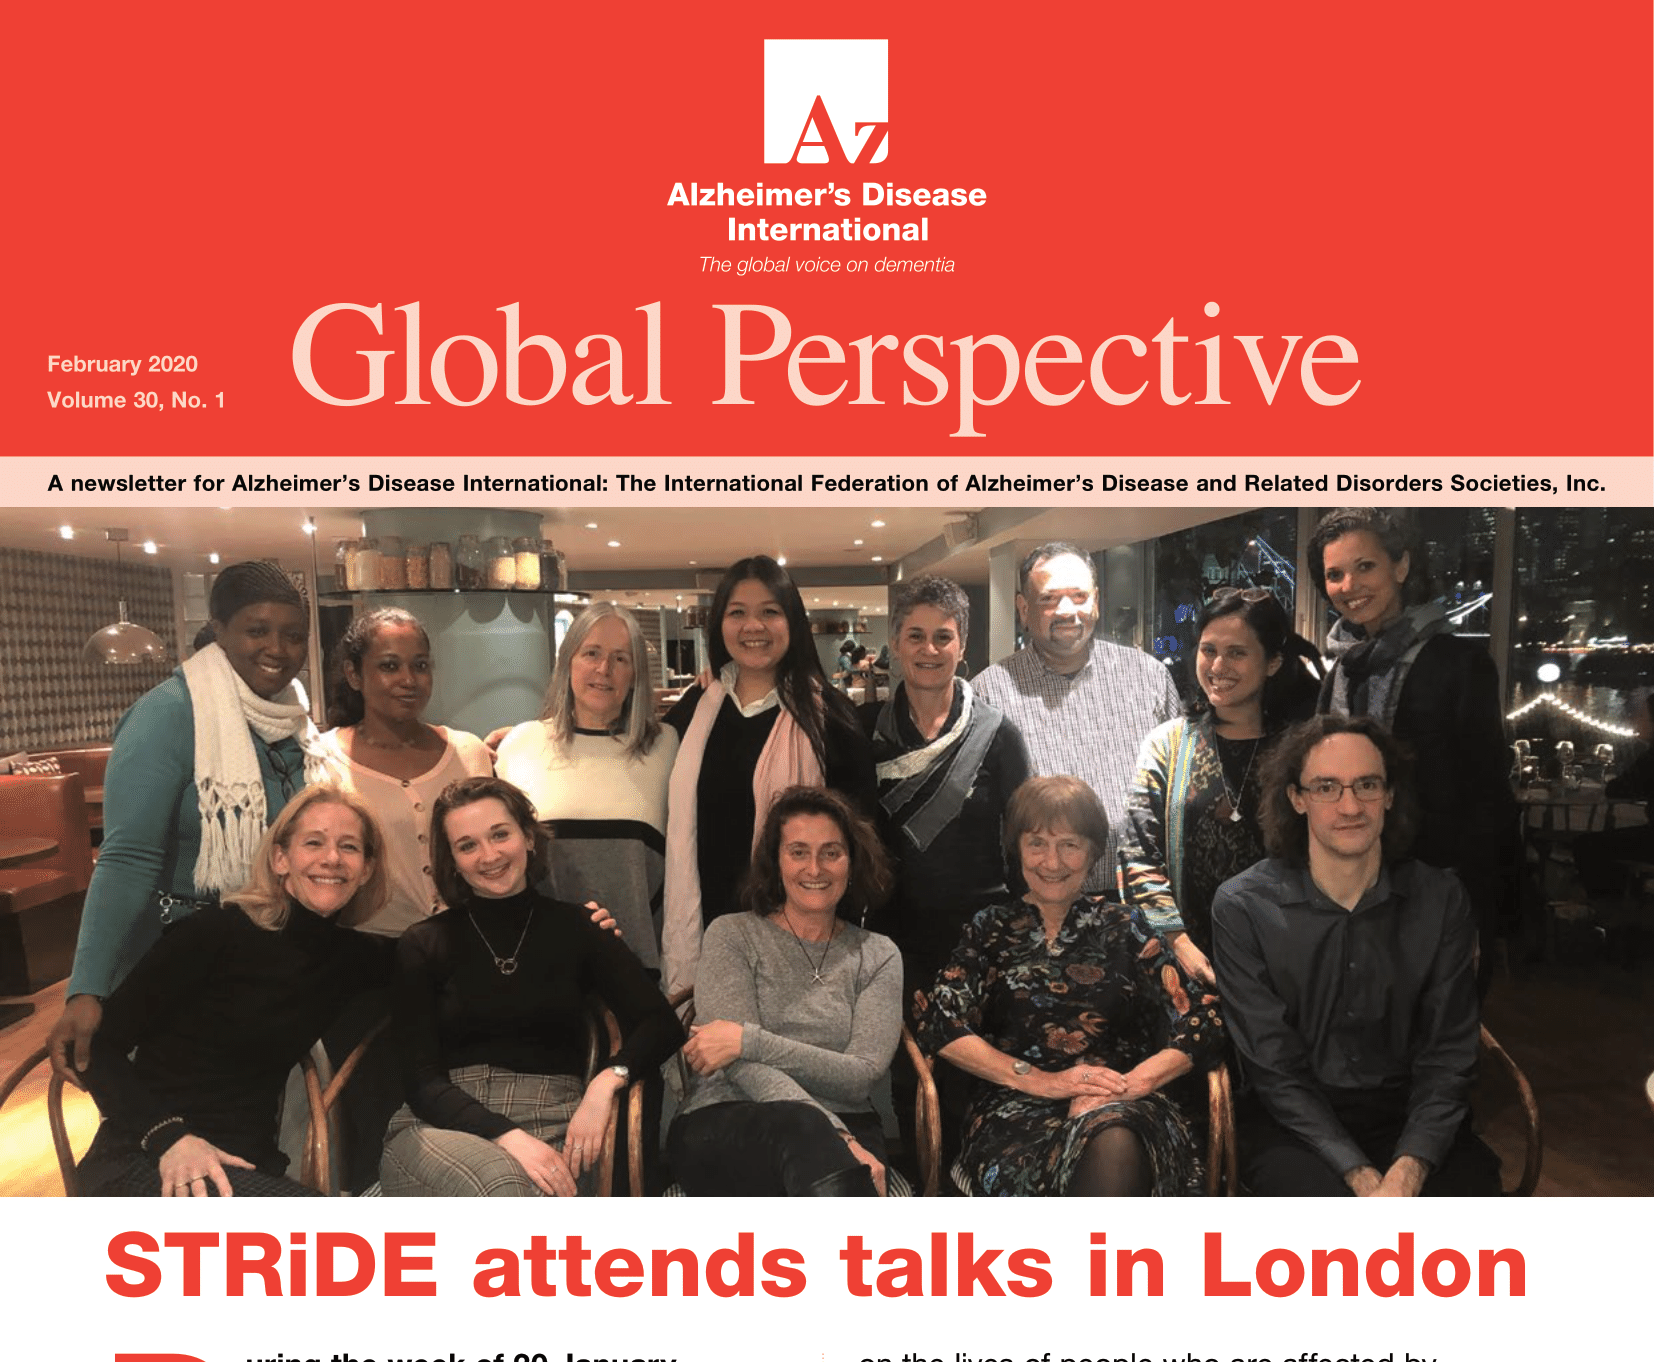 Global Perspective February 2020